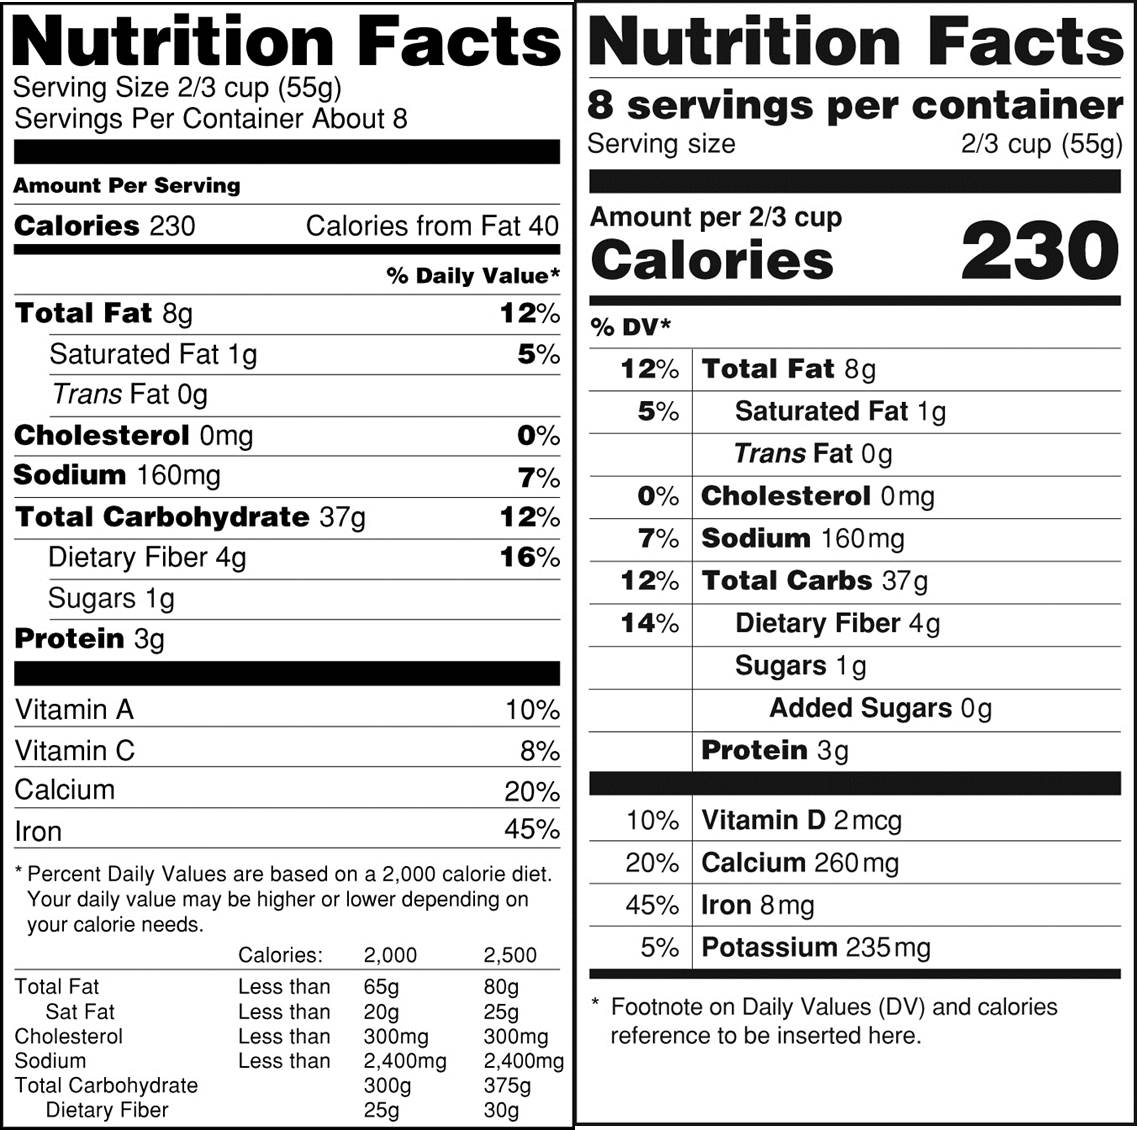 Current vs. Proposed Nutrition Facts Label